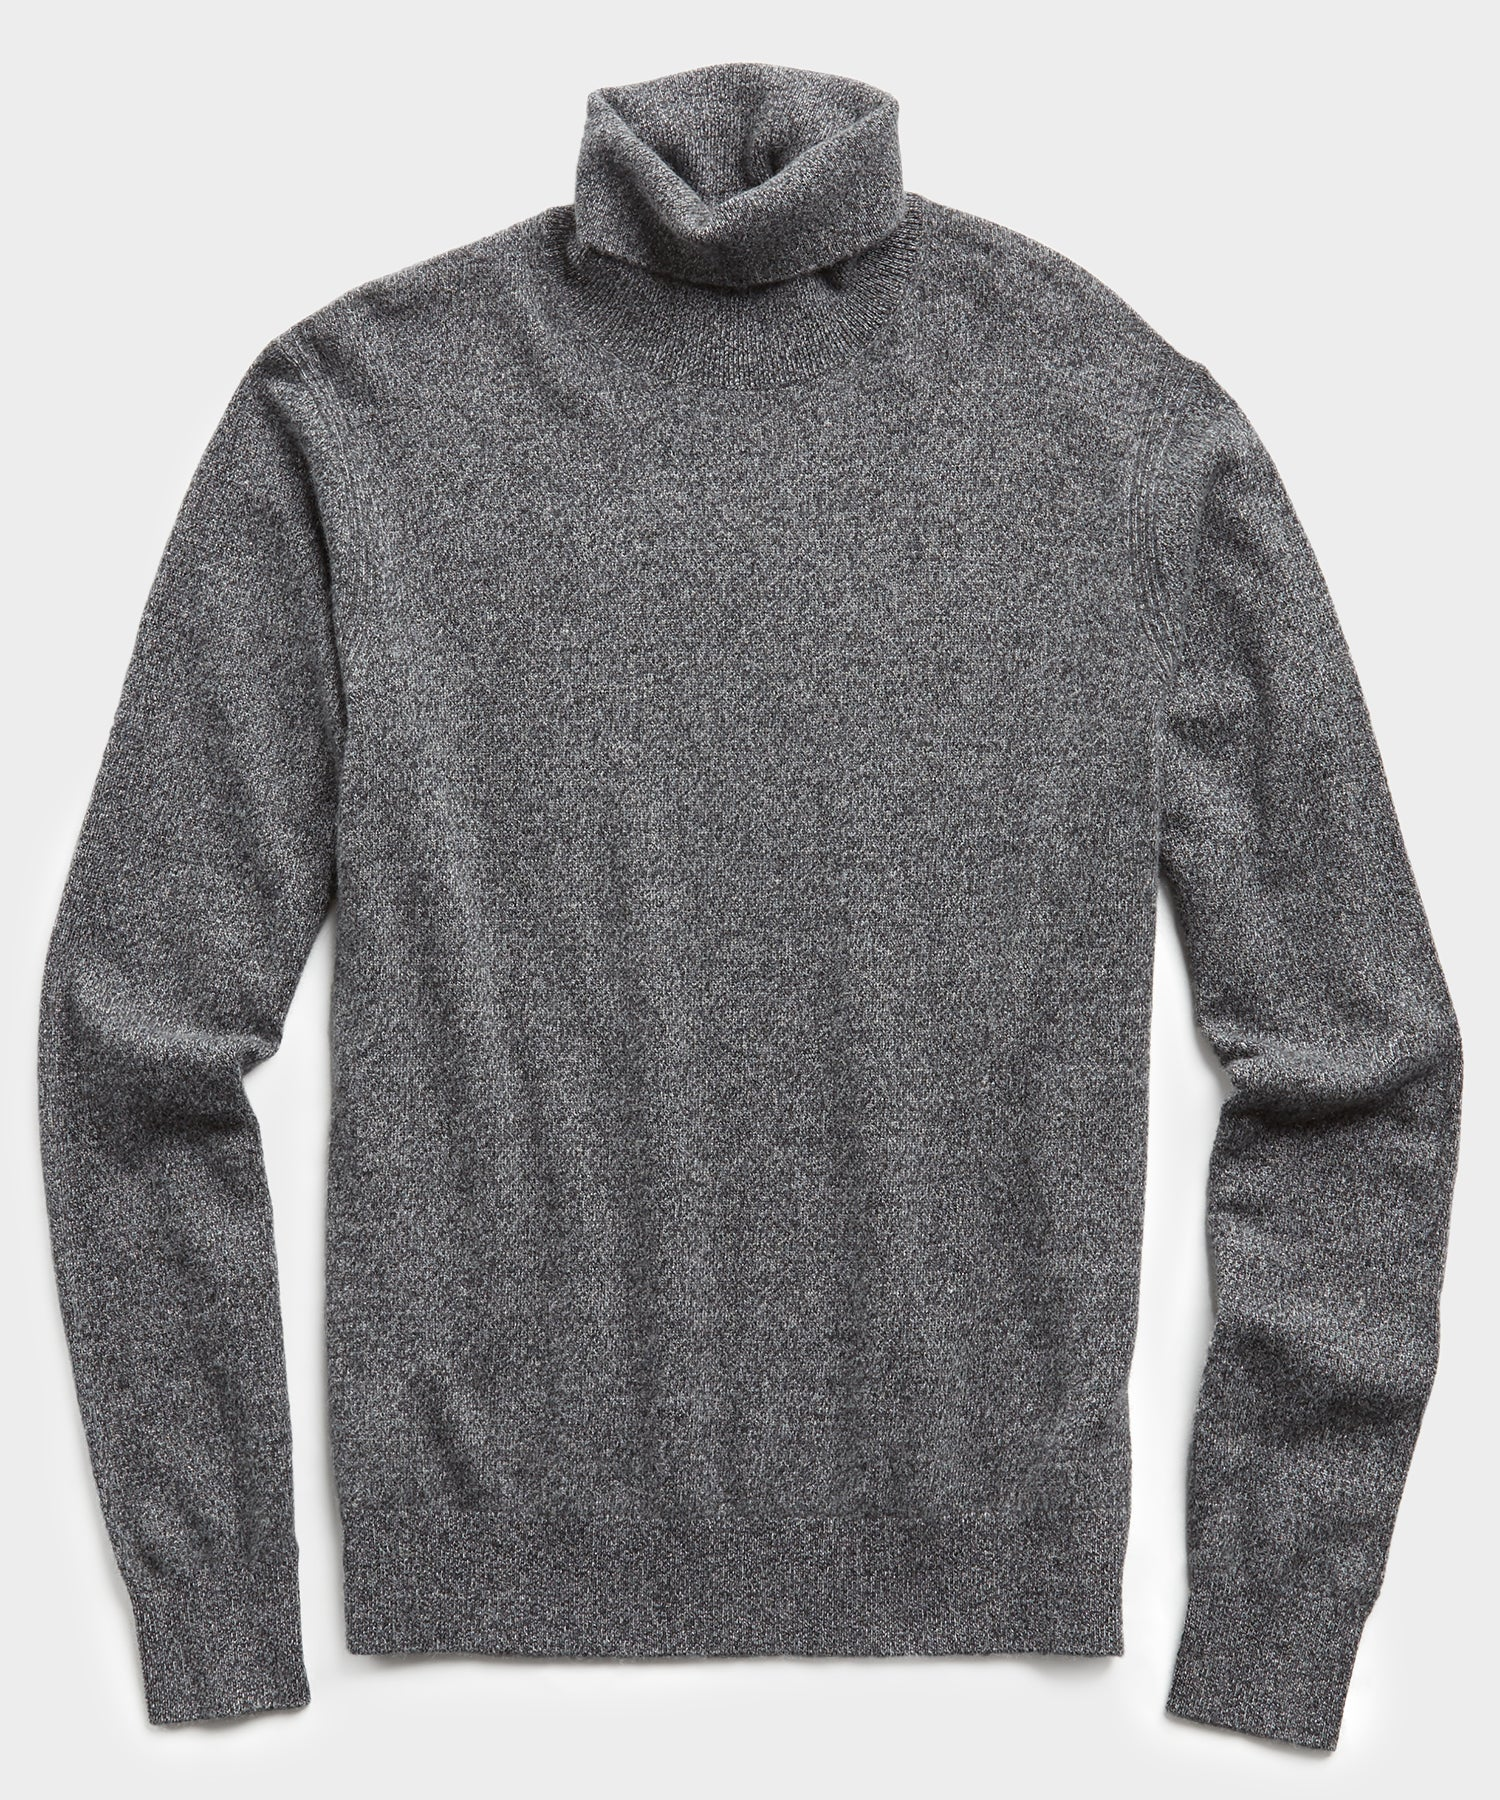 Marled Cashmere Turtleneck in Charcoal